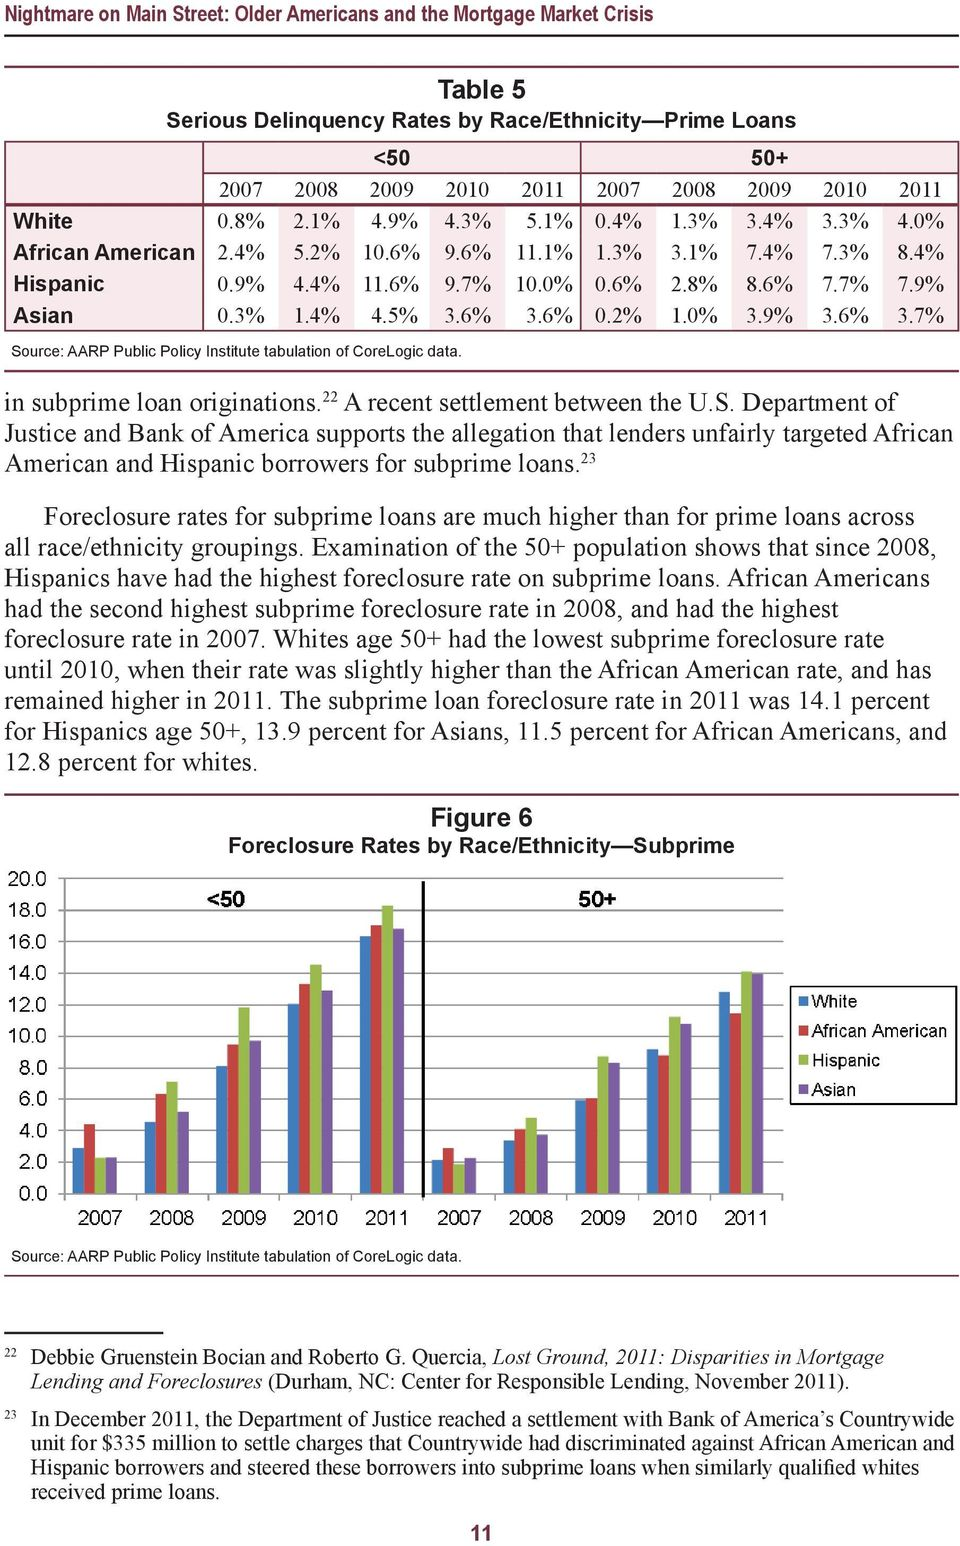 6% 0.2% 1.0% 3.9% 3.6% 3.7% Source: AARP Public Policy Institute tabulation of CoreLogic data. in subprime loan originations. 22 A recent settlement between the U.S. Department of Justice and Bank of America supports the allegation that lenders unfairly targeted African American and Hispanic borrowers for subprime loans.